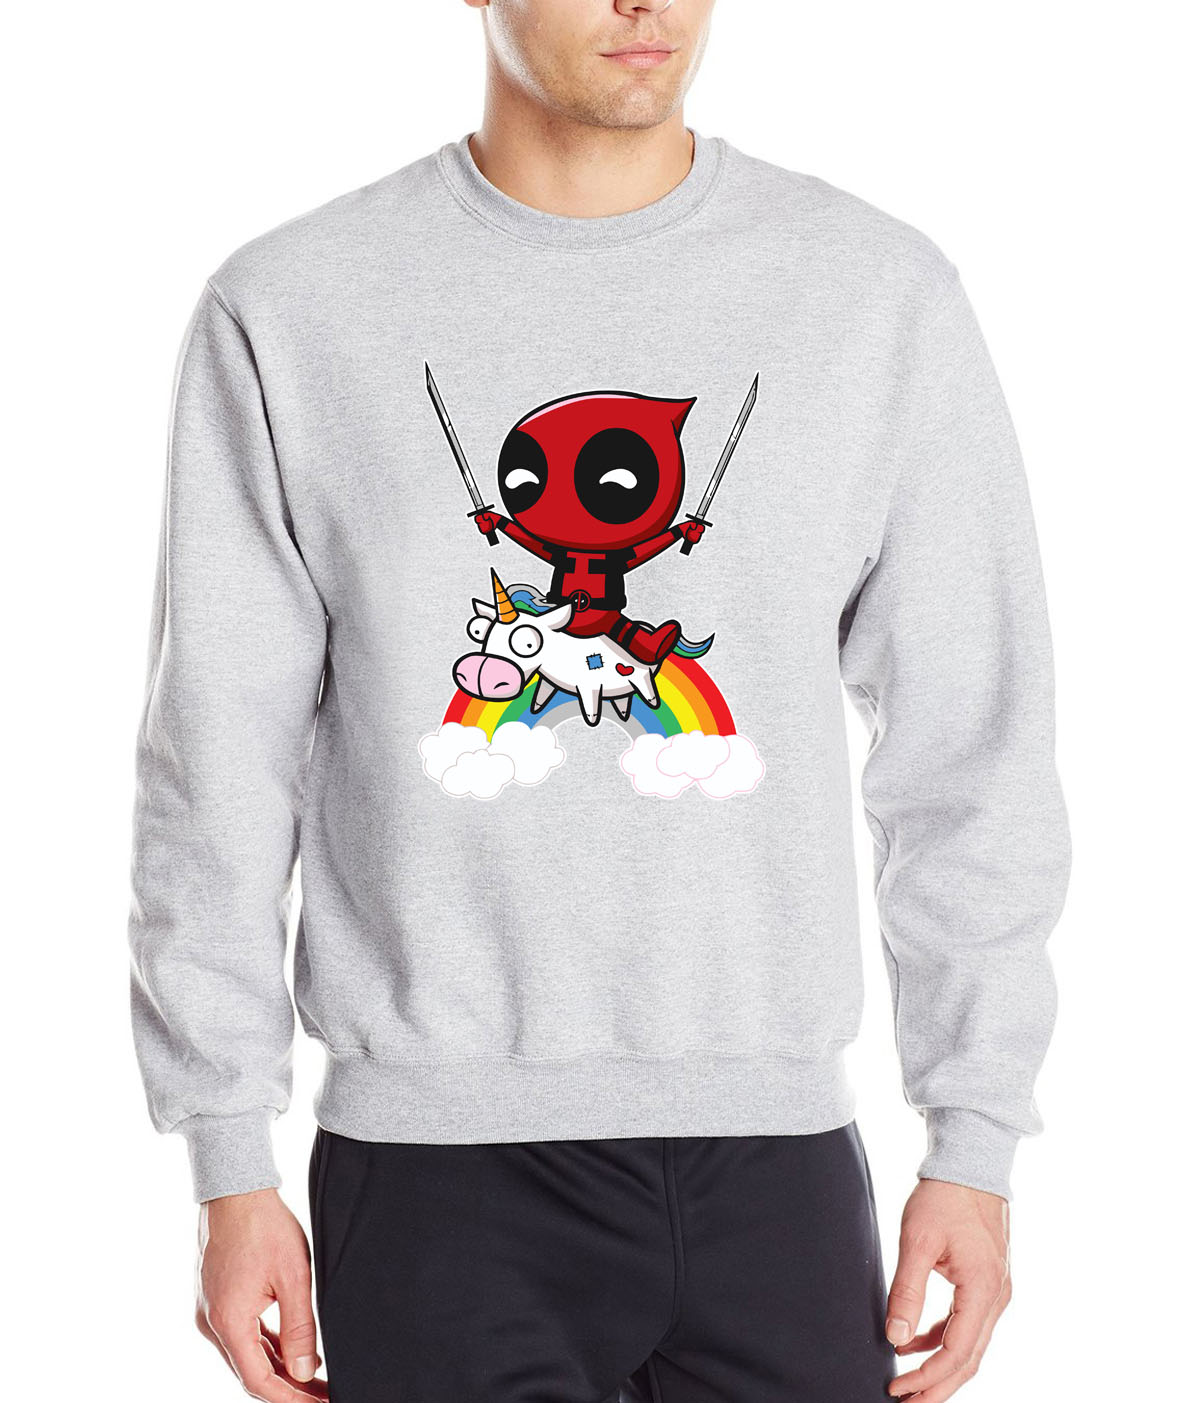 HAMPSON LANQE Deadpool Superhero Sweatshirts Hoodies Men 2019 New Style Autumn Winter Casual Fleece Hoody Loose Fit Sportswear